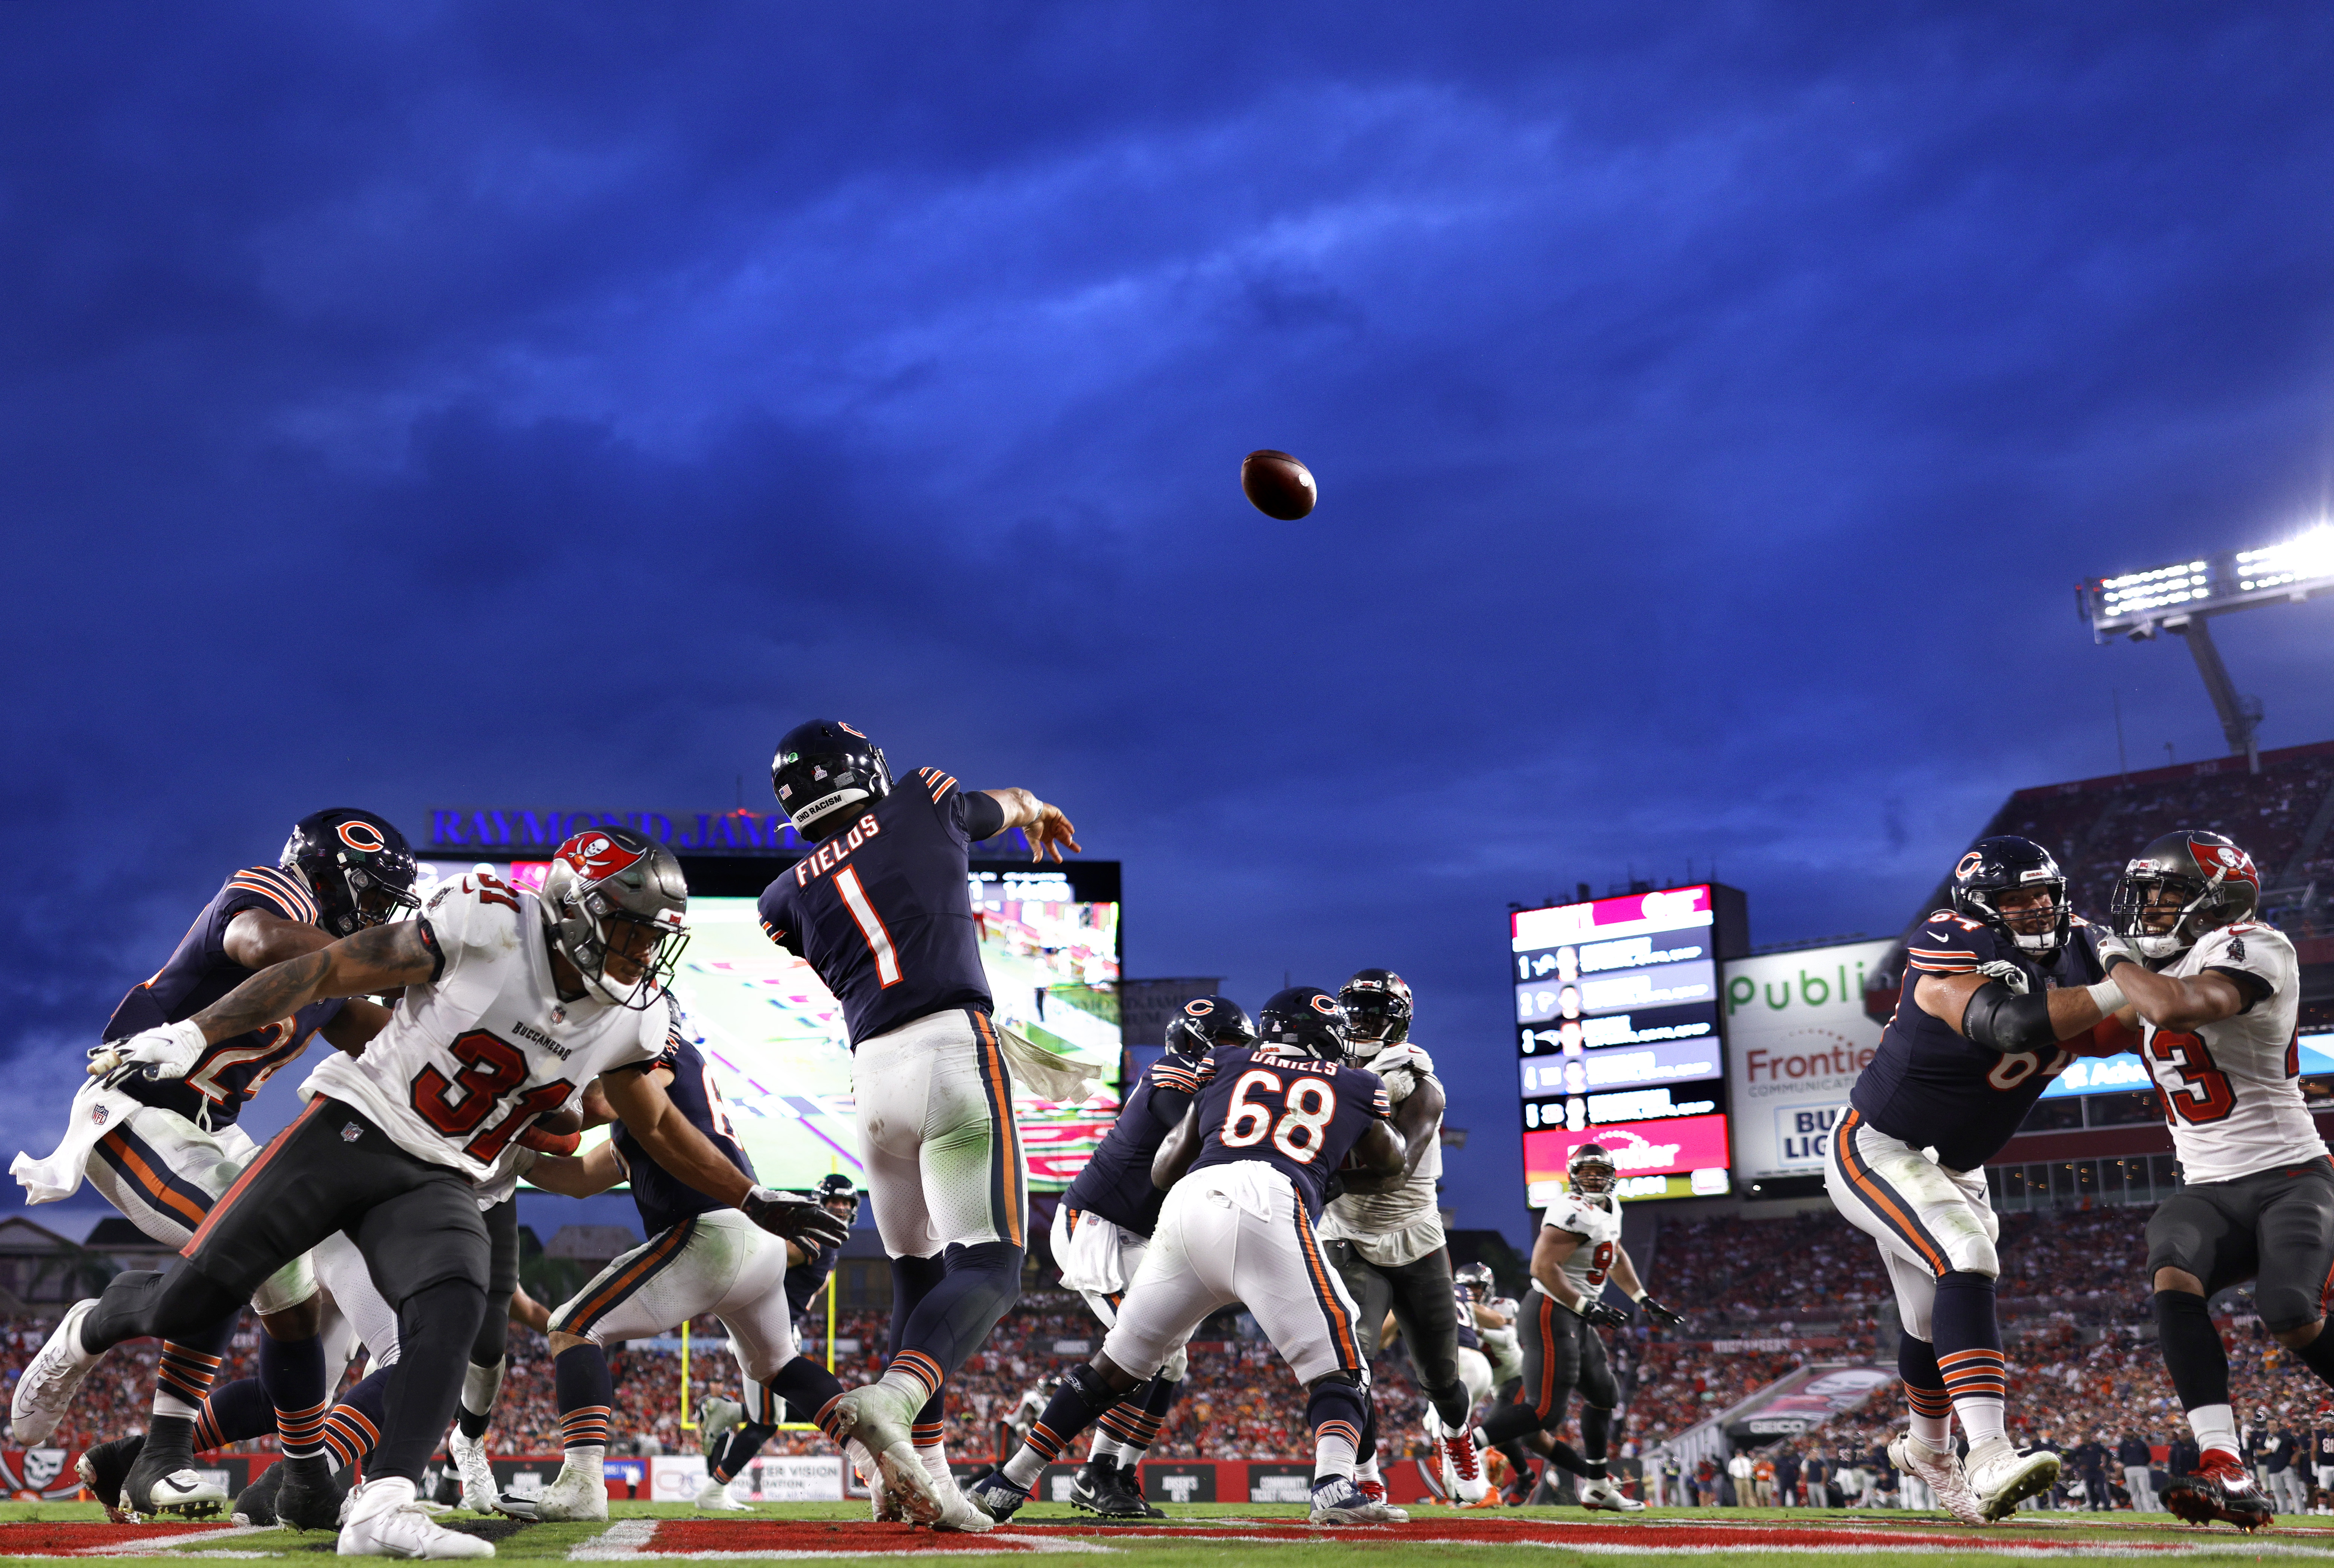 The Bears throw a pass Sunday against the Buccaneers.